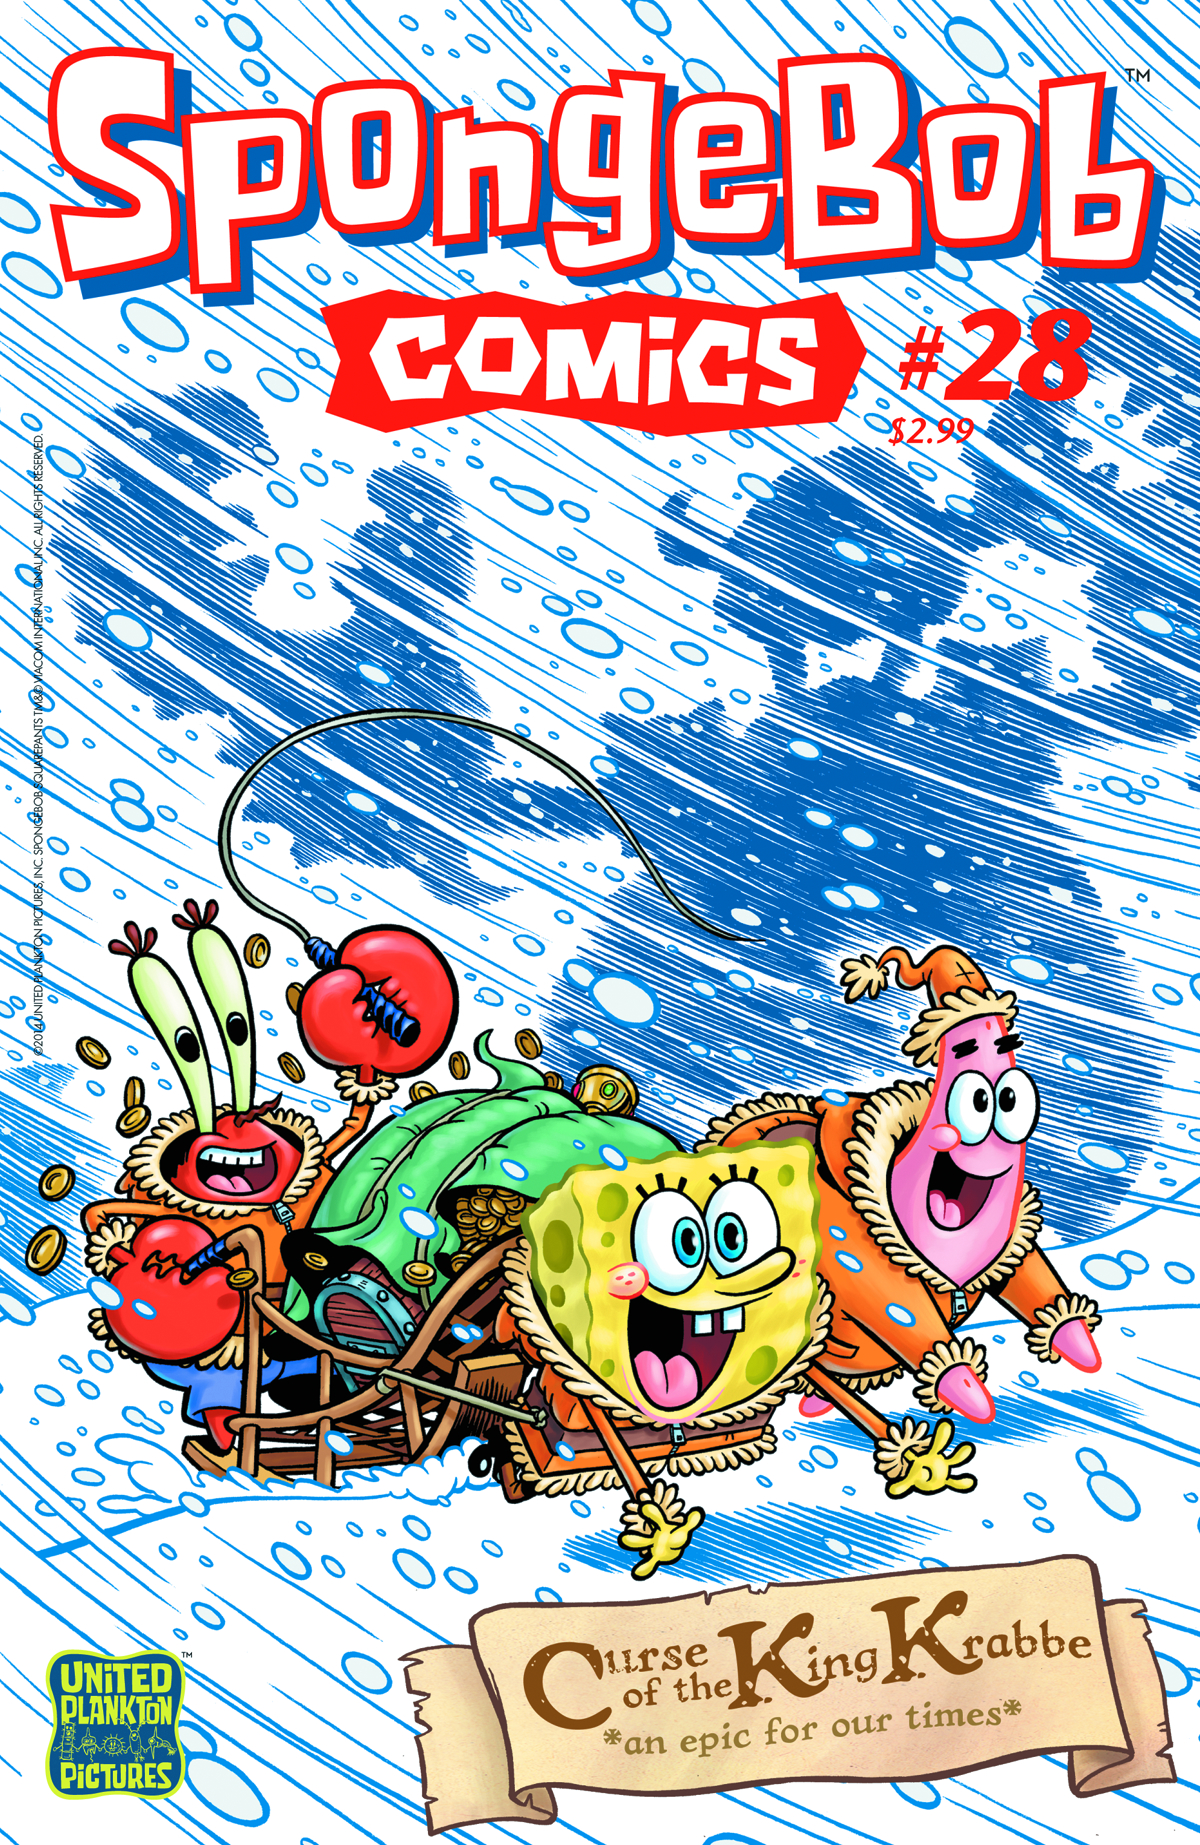 SPONGEBOB COMICS #28